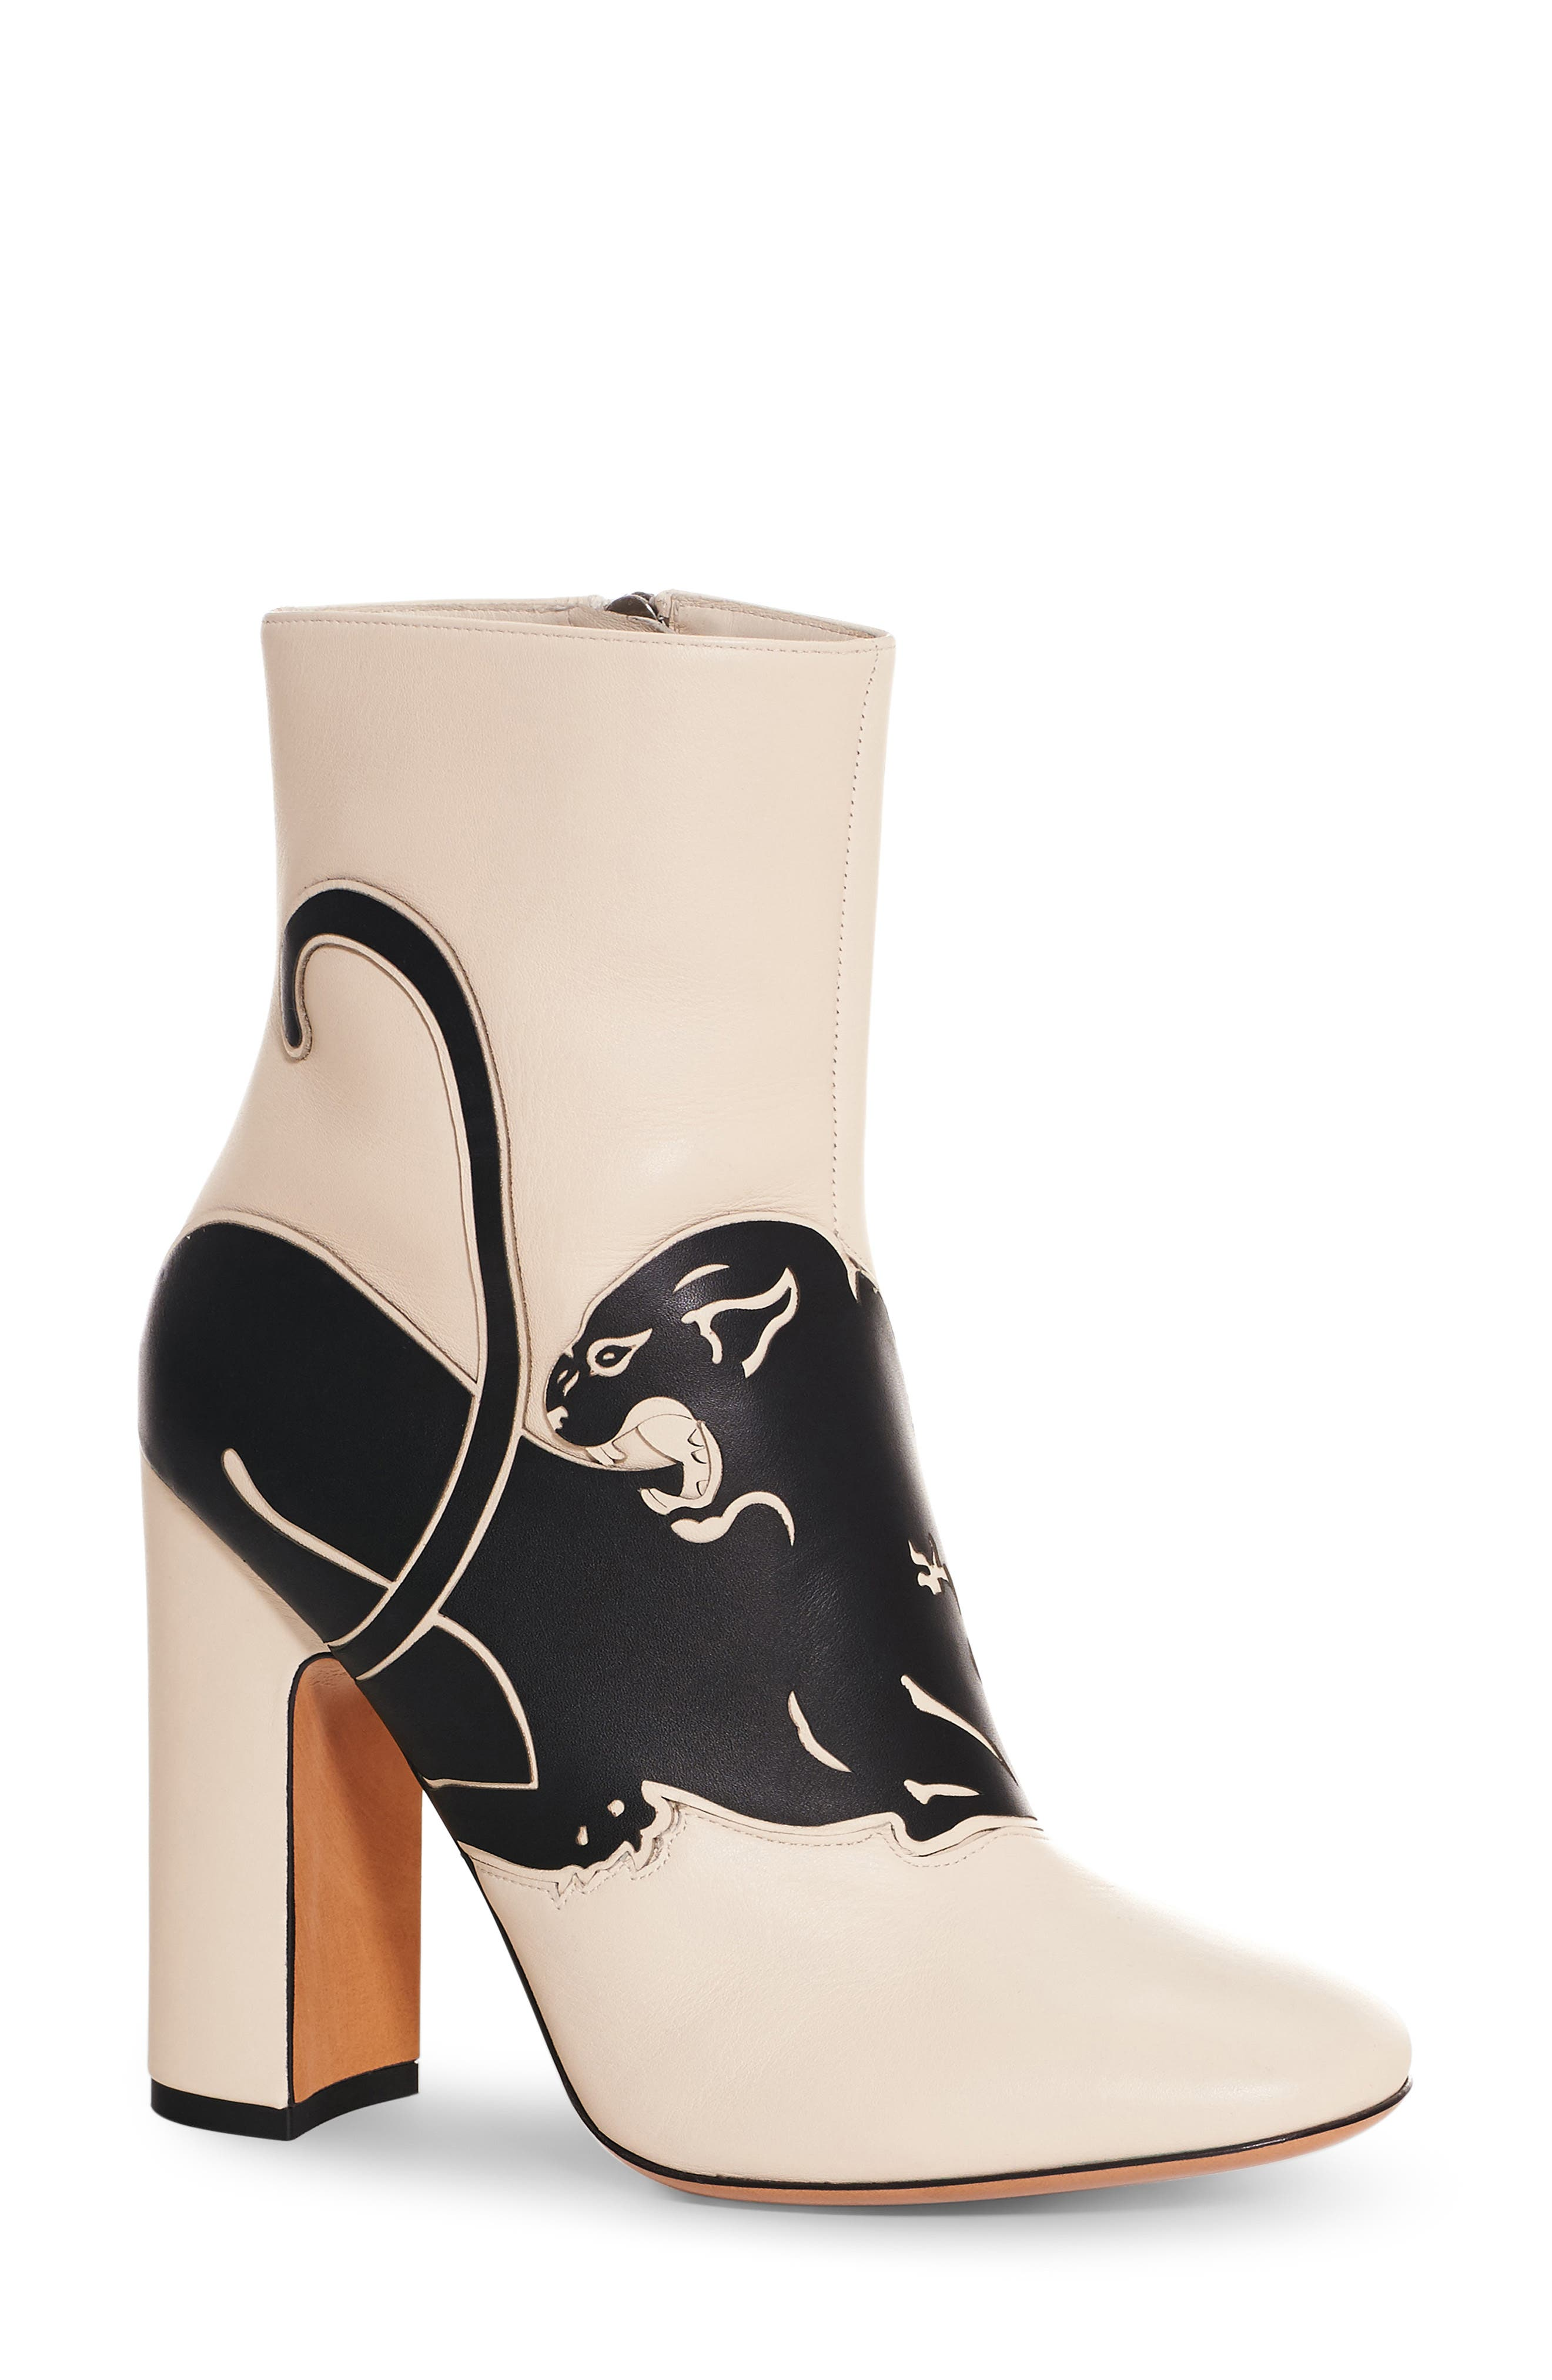 Panther Boot,                             Main thumbnail 1, color,                             Ivory Leather